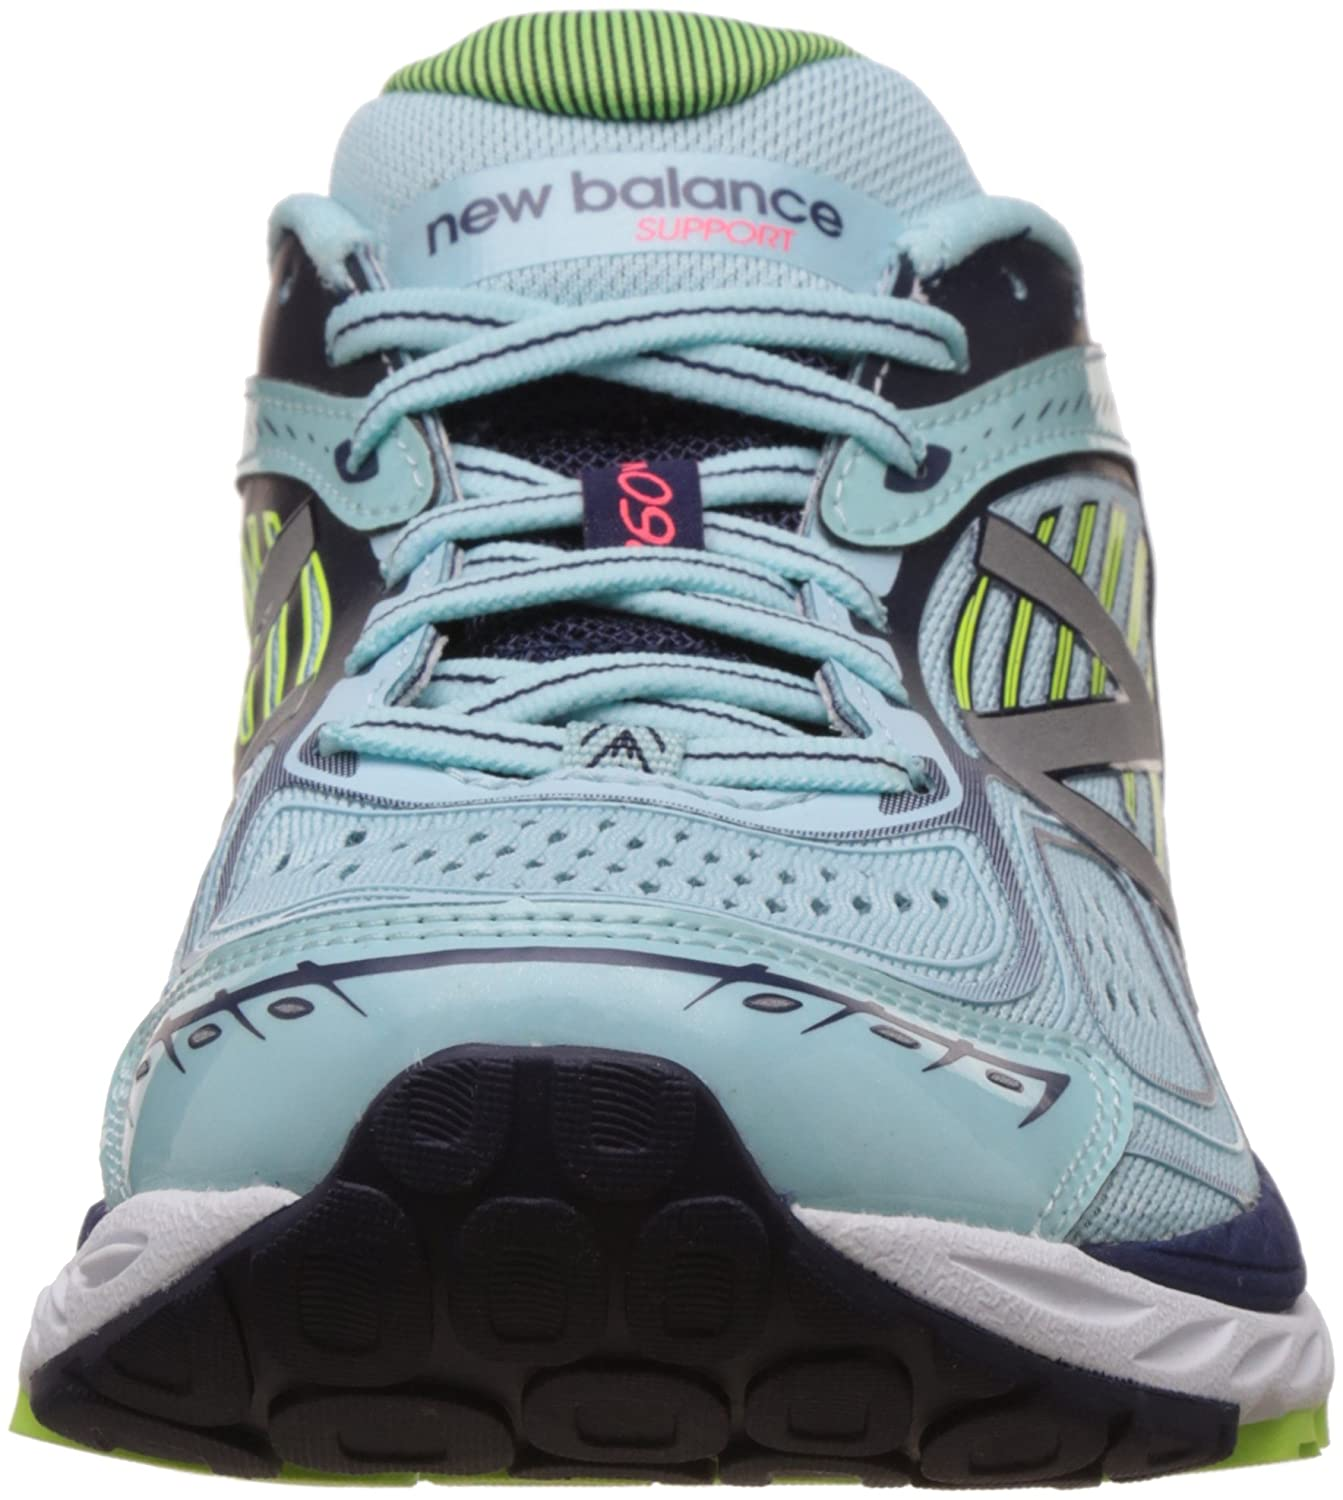 New Balance Women's W860bp7 B01M1SNGGM 6.5 B(M) US|White/Blue